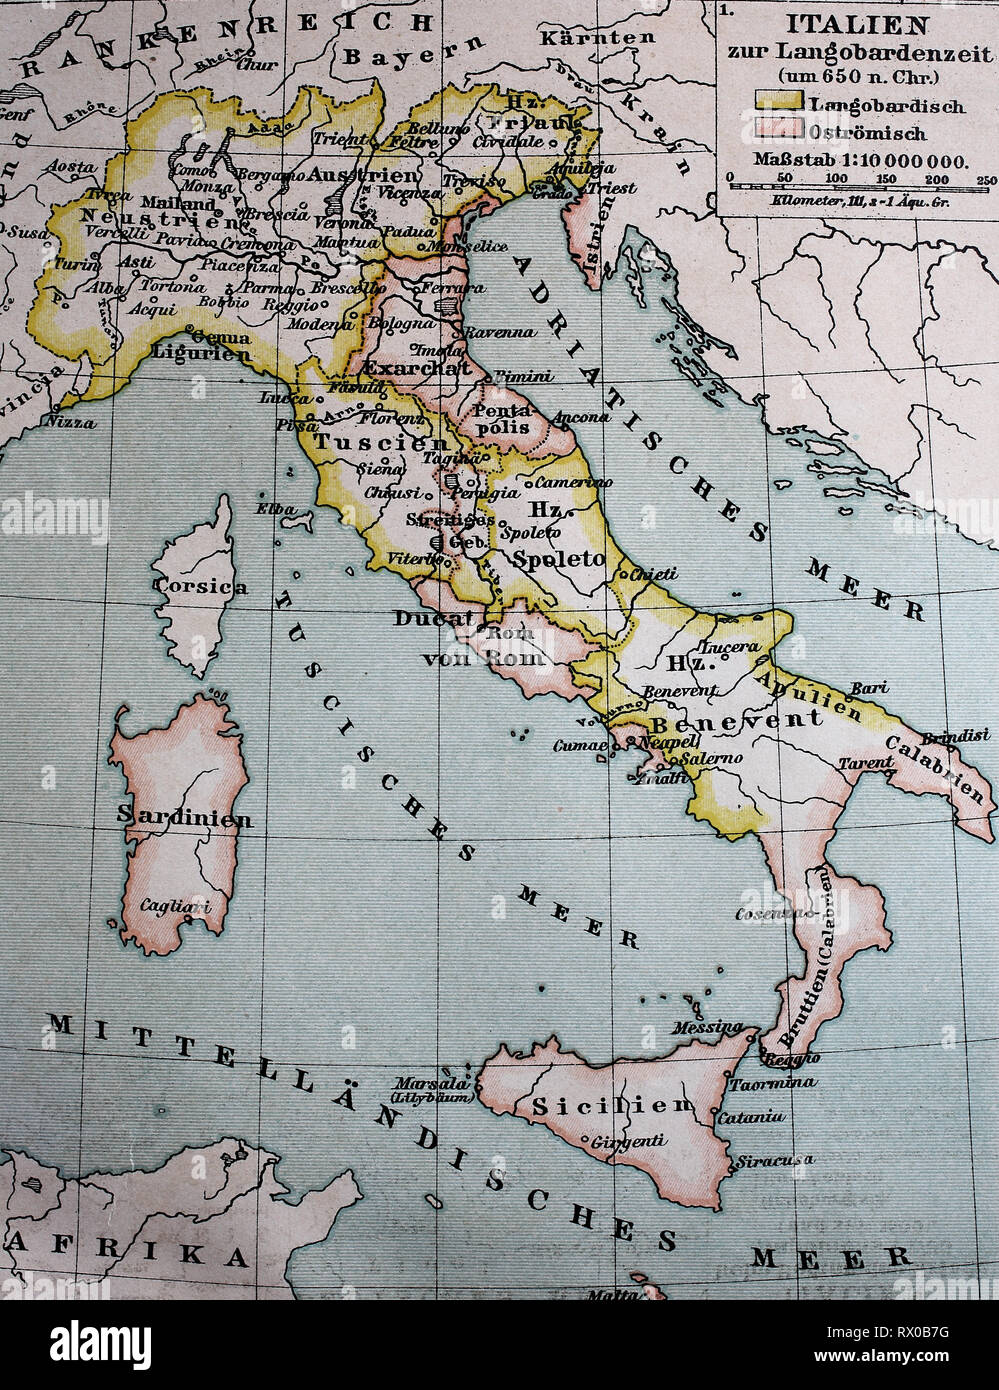 Landkarte von Italien zur Langobardenzeit, ca 650 / Map of Italy at the Longobard period, or Lombards time, about 650 - Stock Image